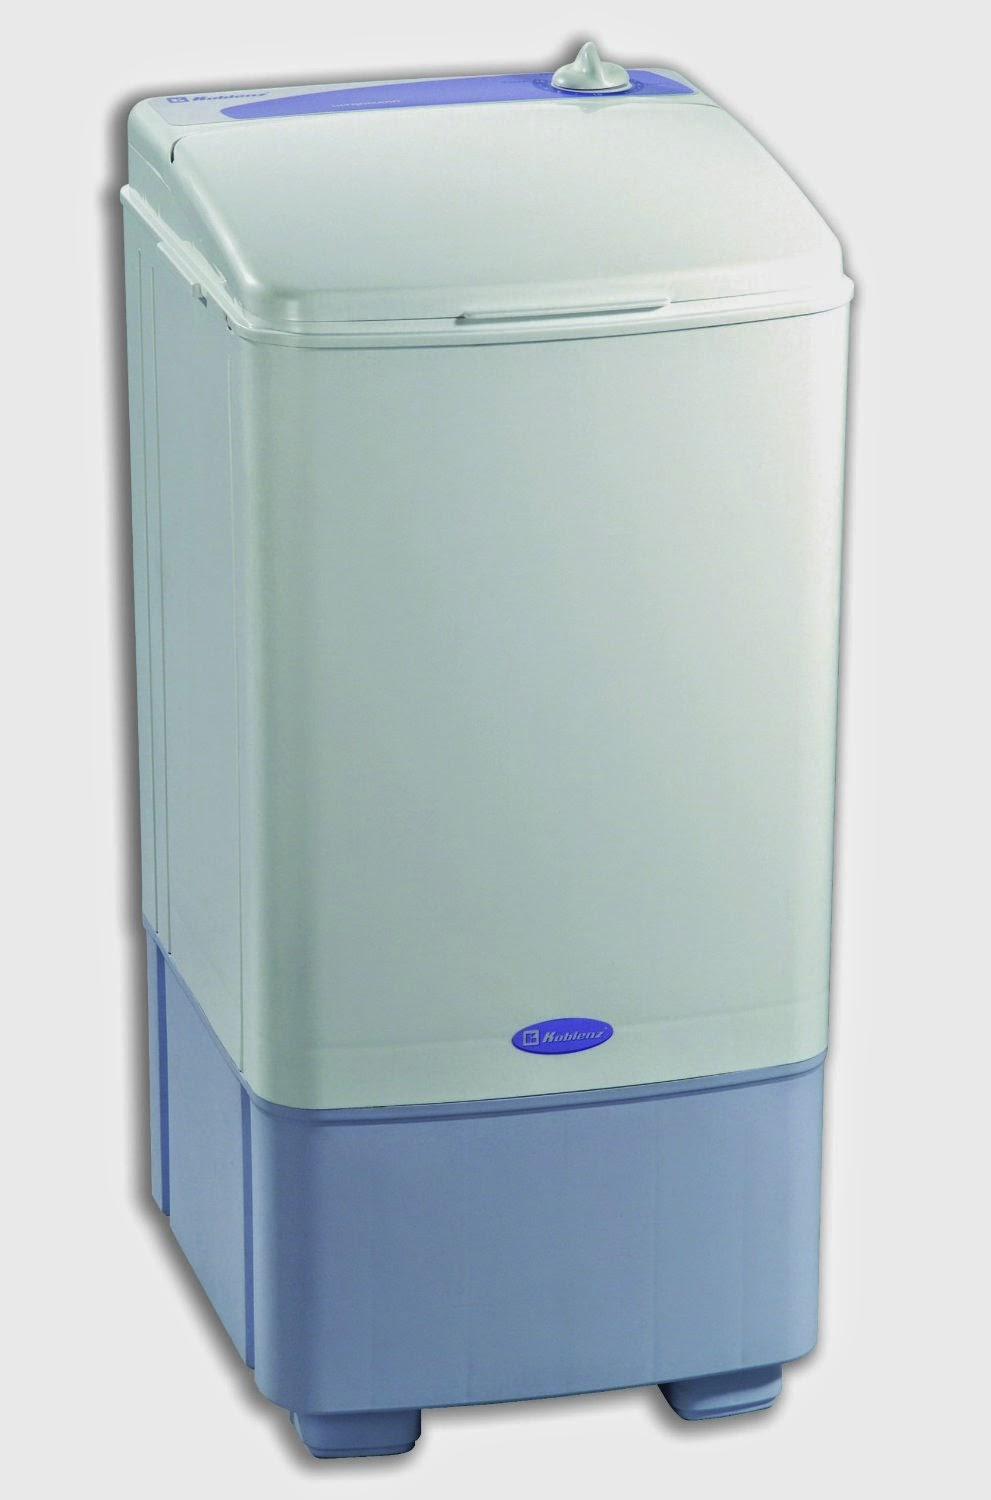 Emejing Portable Washer And Dryer Sets For Apartments Gallery ...